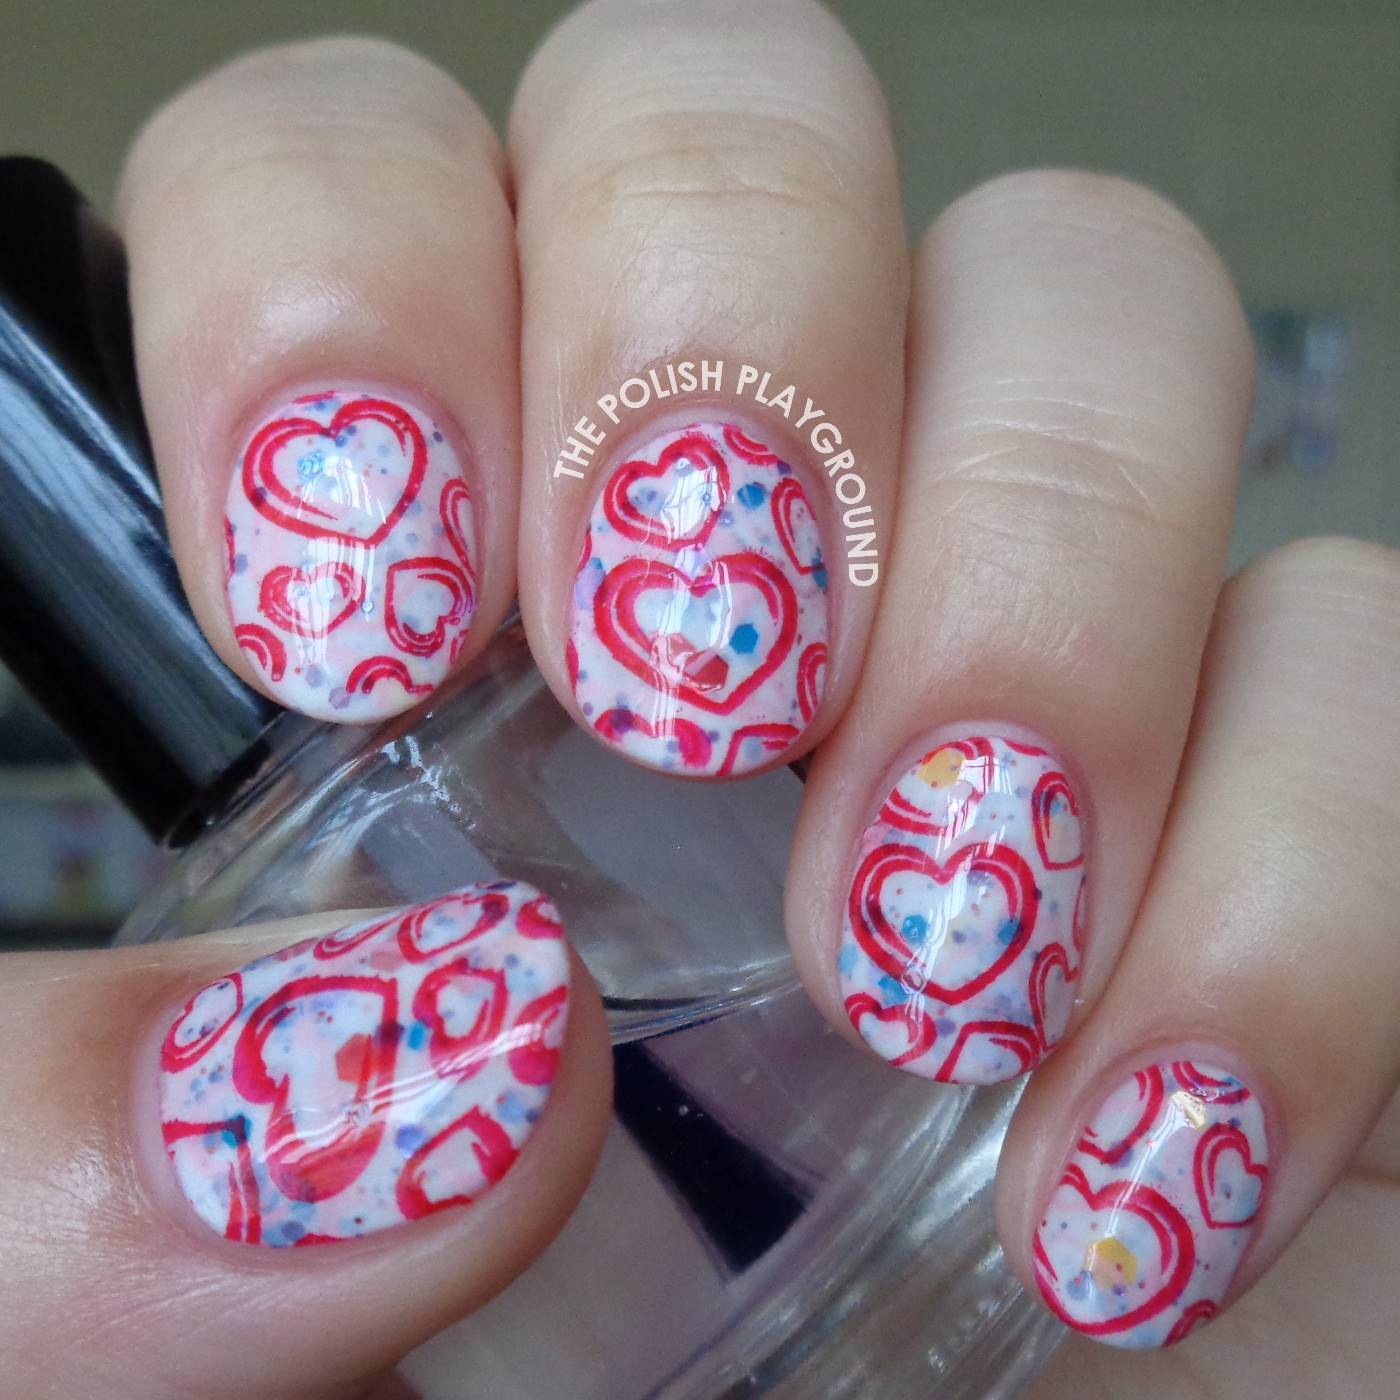 Double Stamped Pink and Red Hearts Valentine's Day Stamping Nail Art